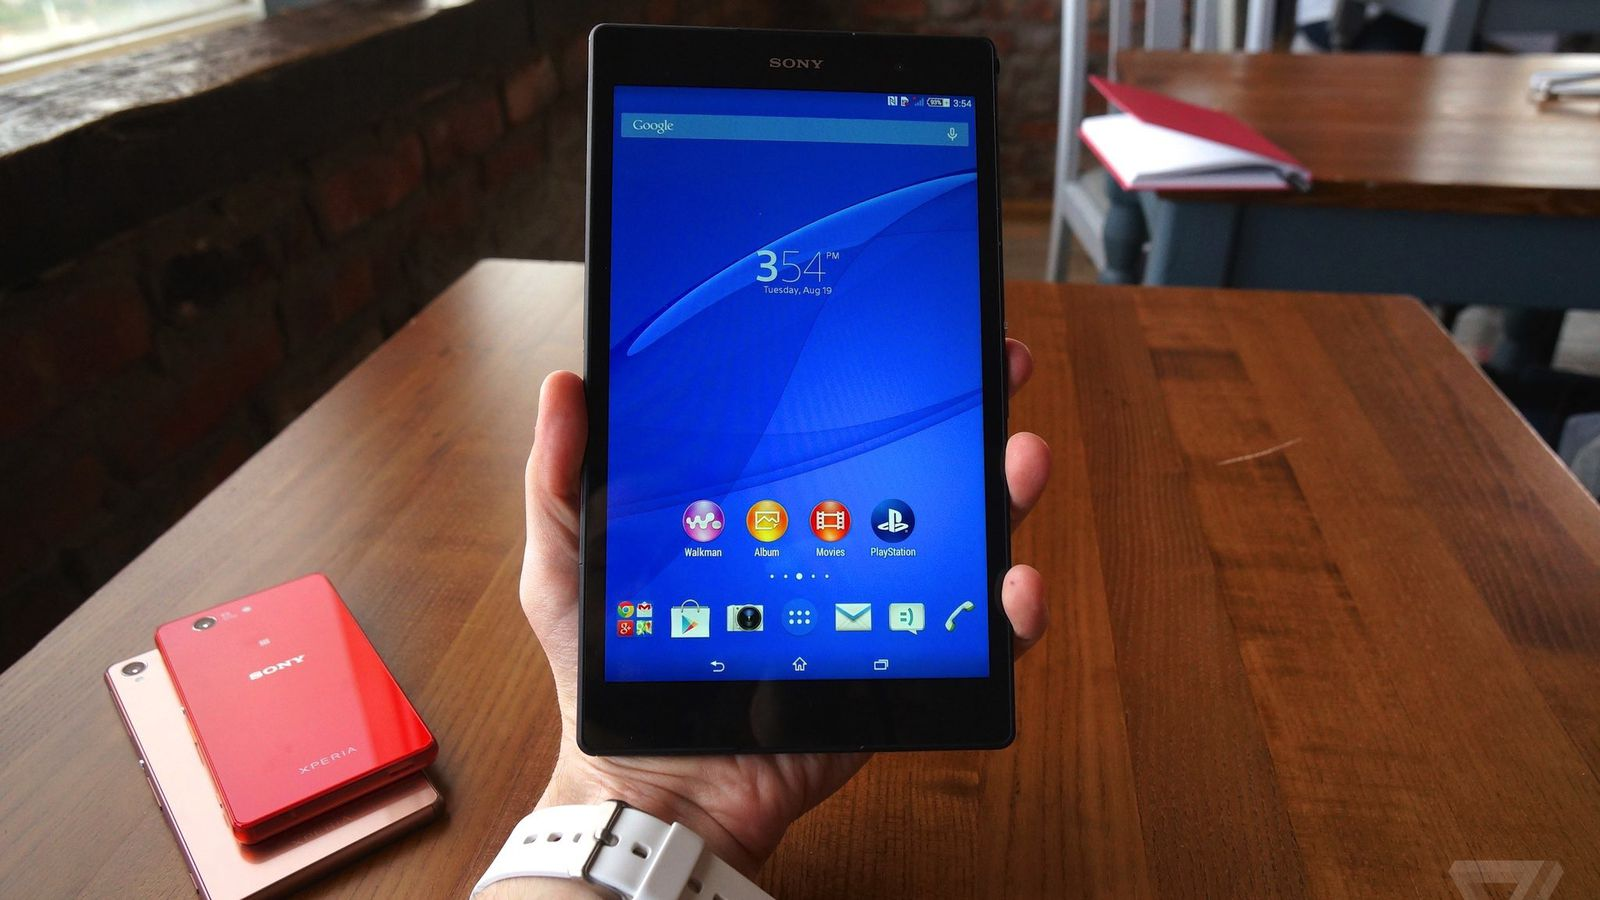 a closer look at sony s sleek new xperia z and z tablet compact a closer look at sony s sleek new xperia z3 and z3 tablet compact the verge